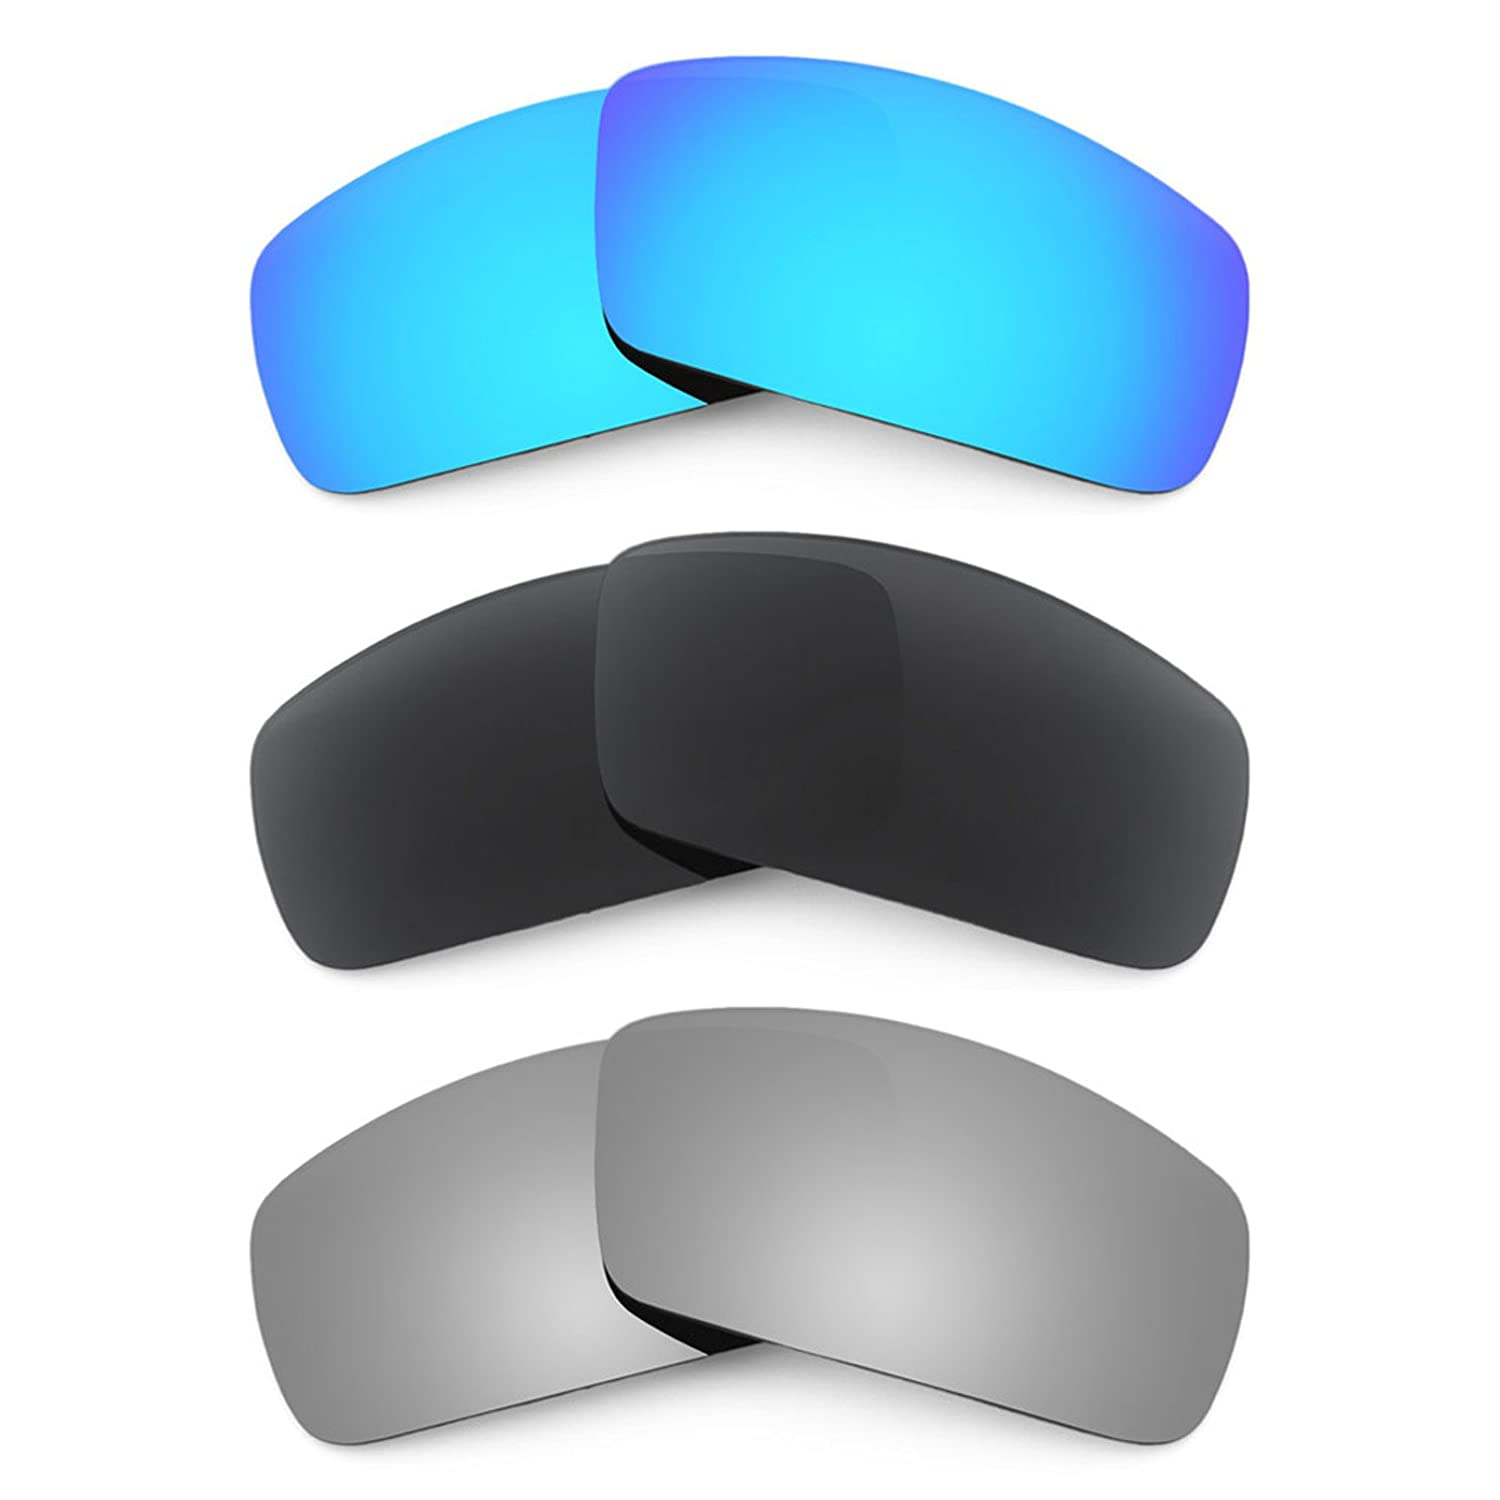 0876d34148 Revant Replacement Lenses for Oakley Canteen (2006) 3 Pair Combo Pack K015   Amazon.co.uk  Clothing